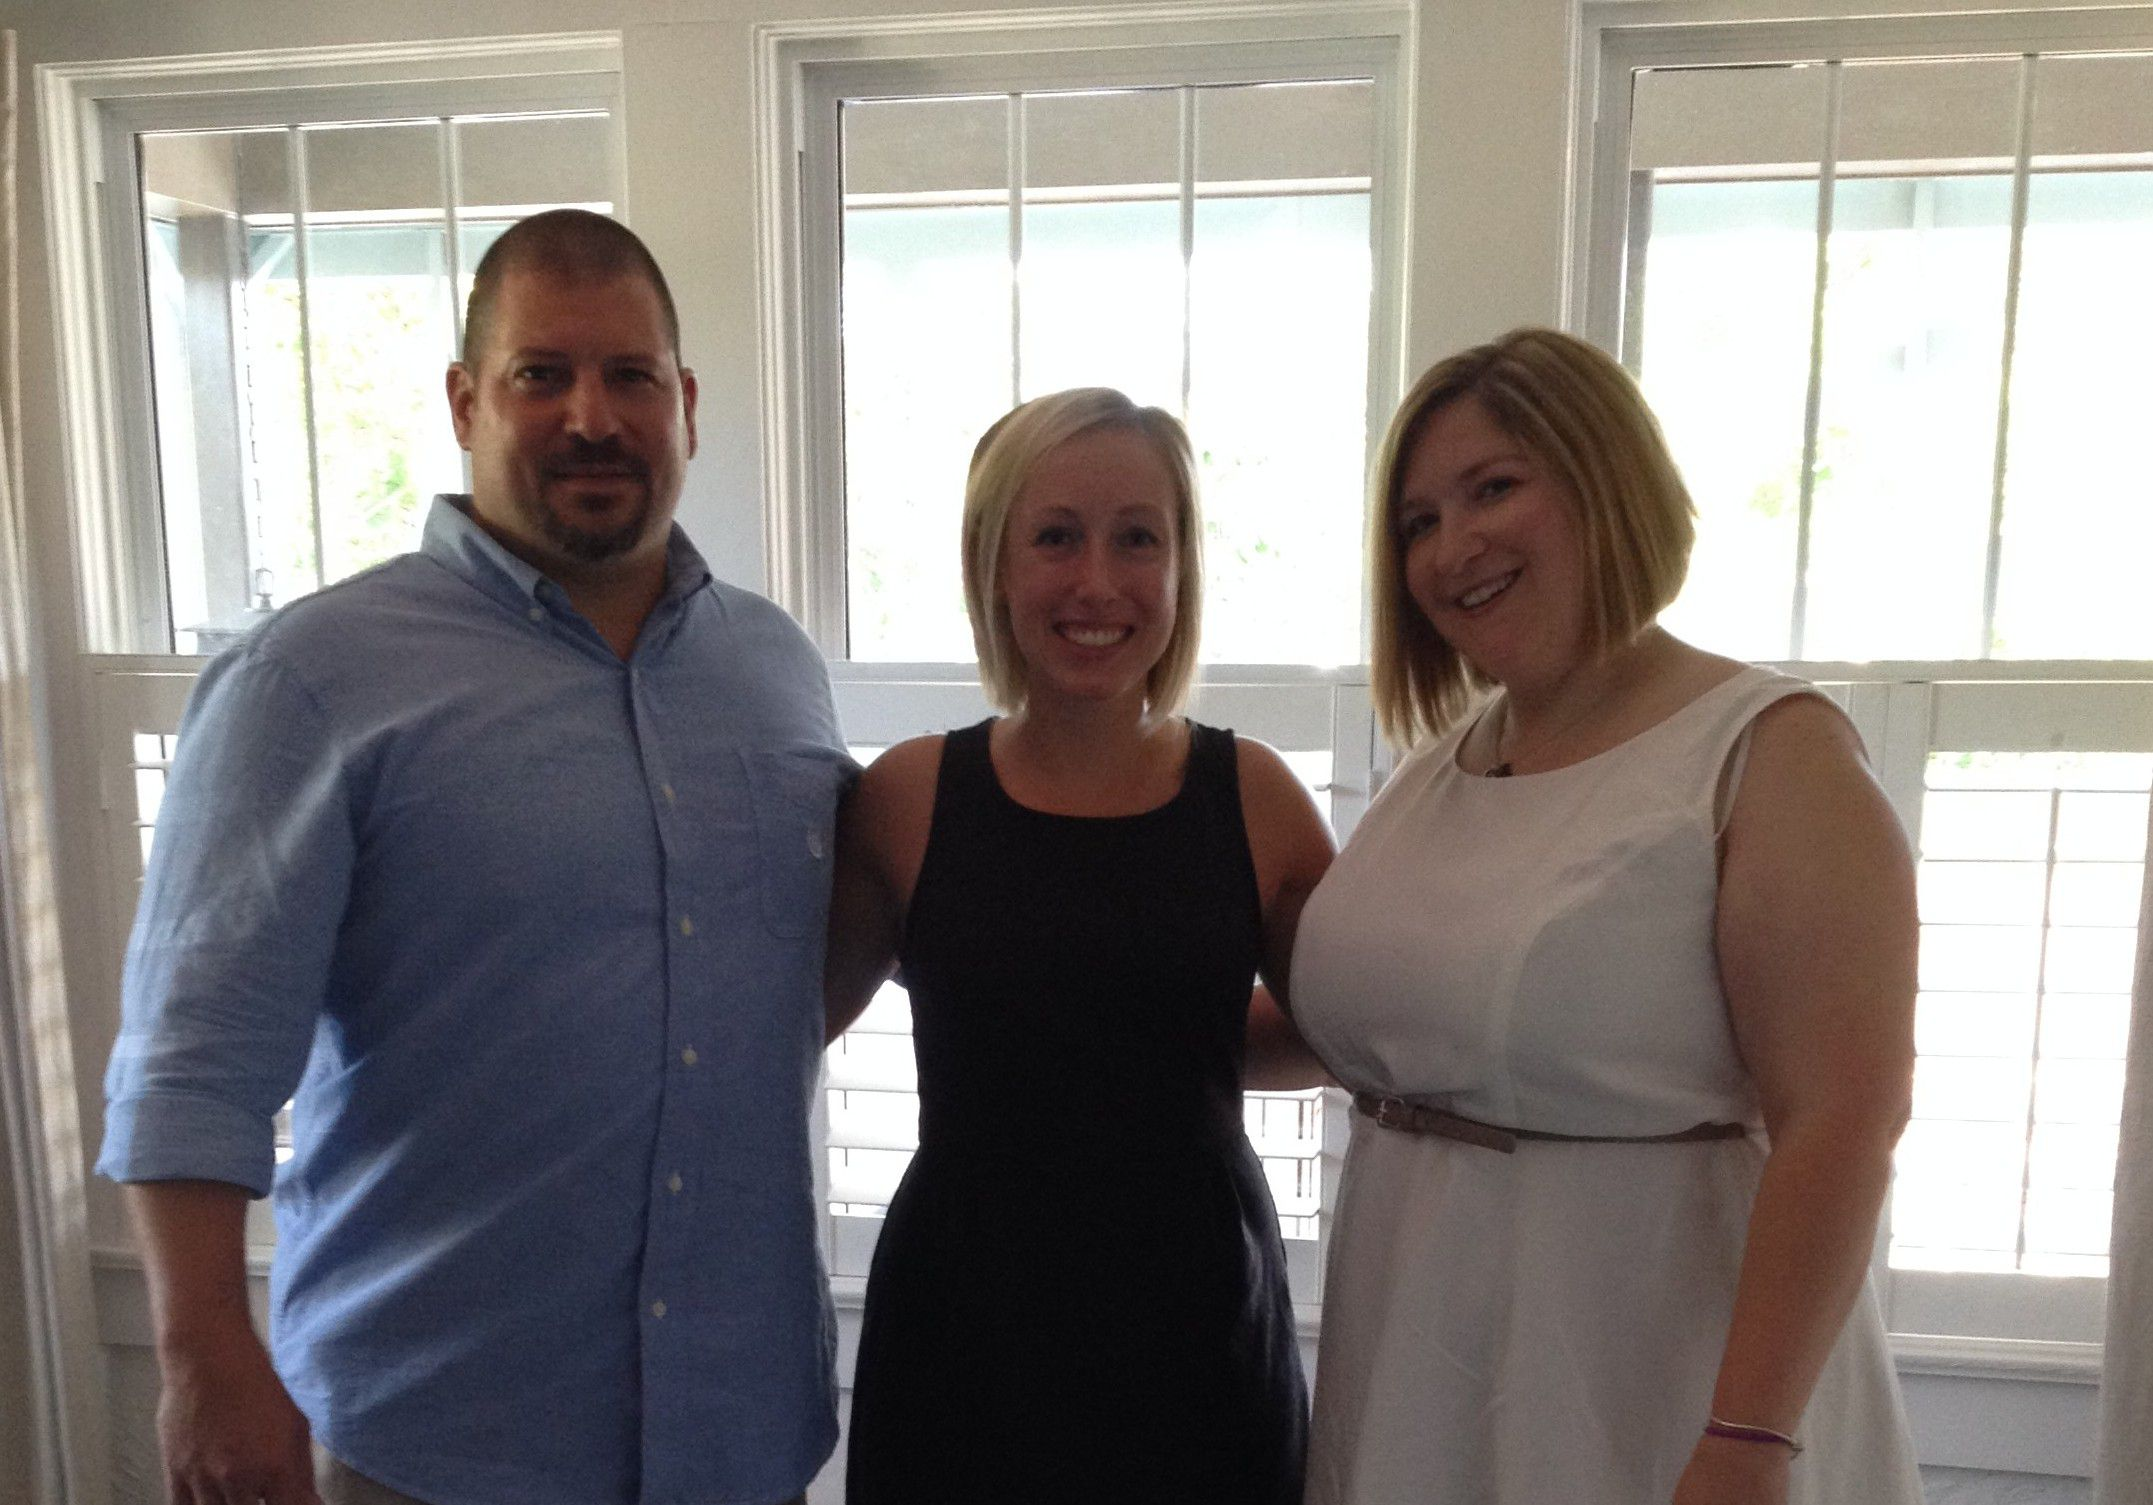 Tallahassee Officiant Performs Wedding at The Front Porch